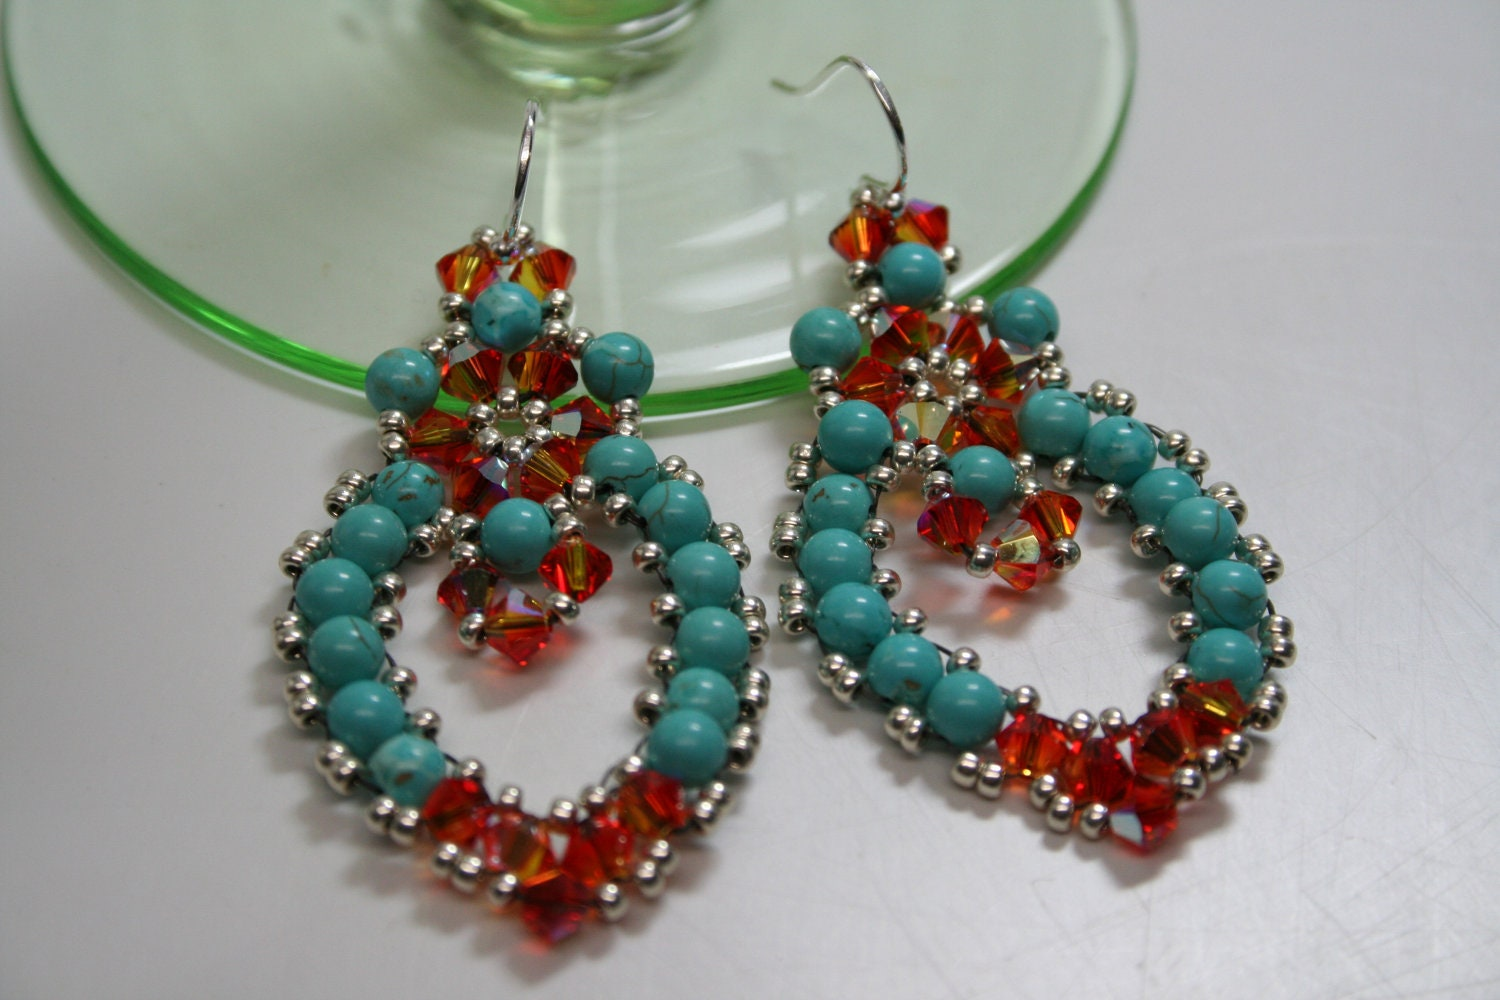 Mexican Embroidery Lace Chandelier Earrings